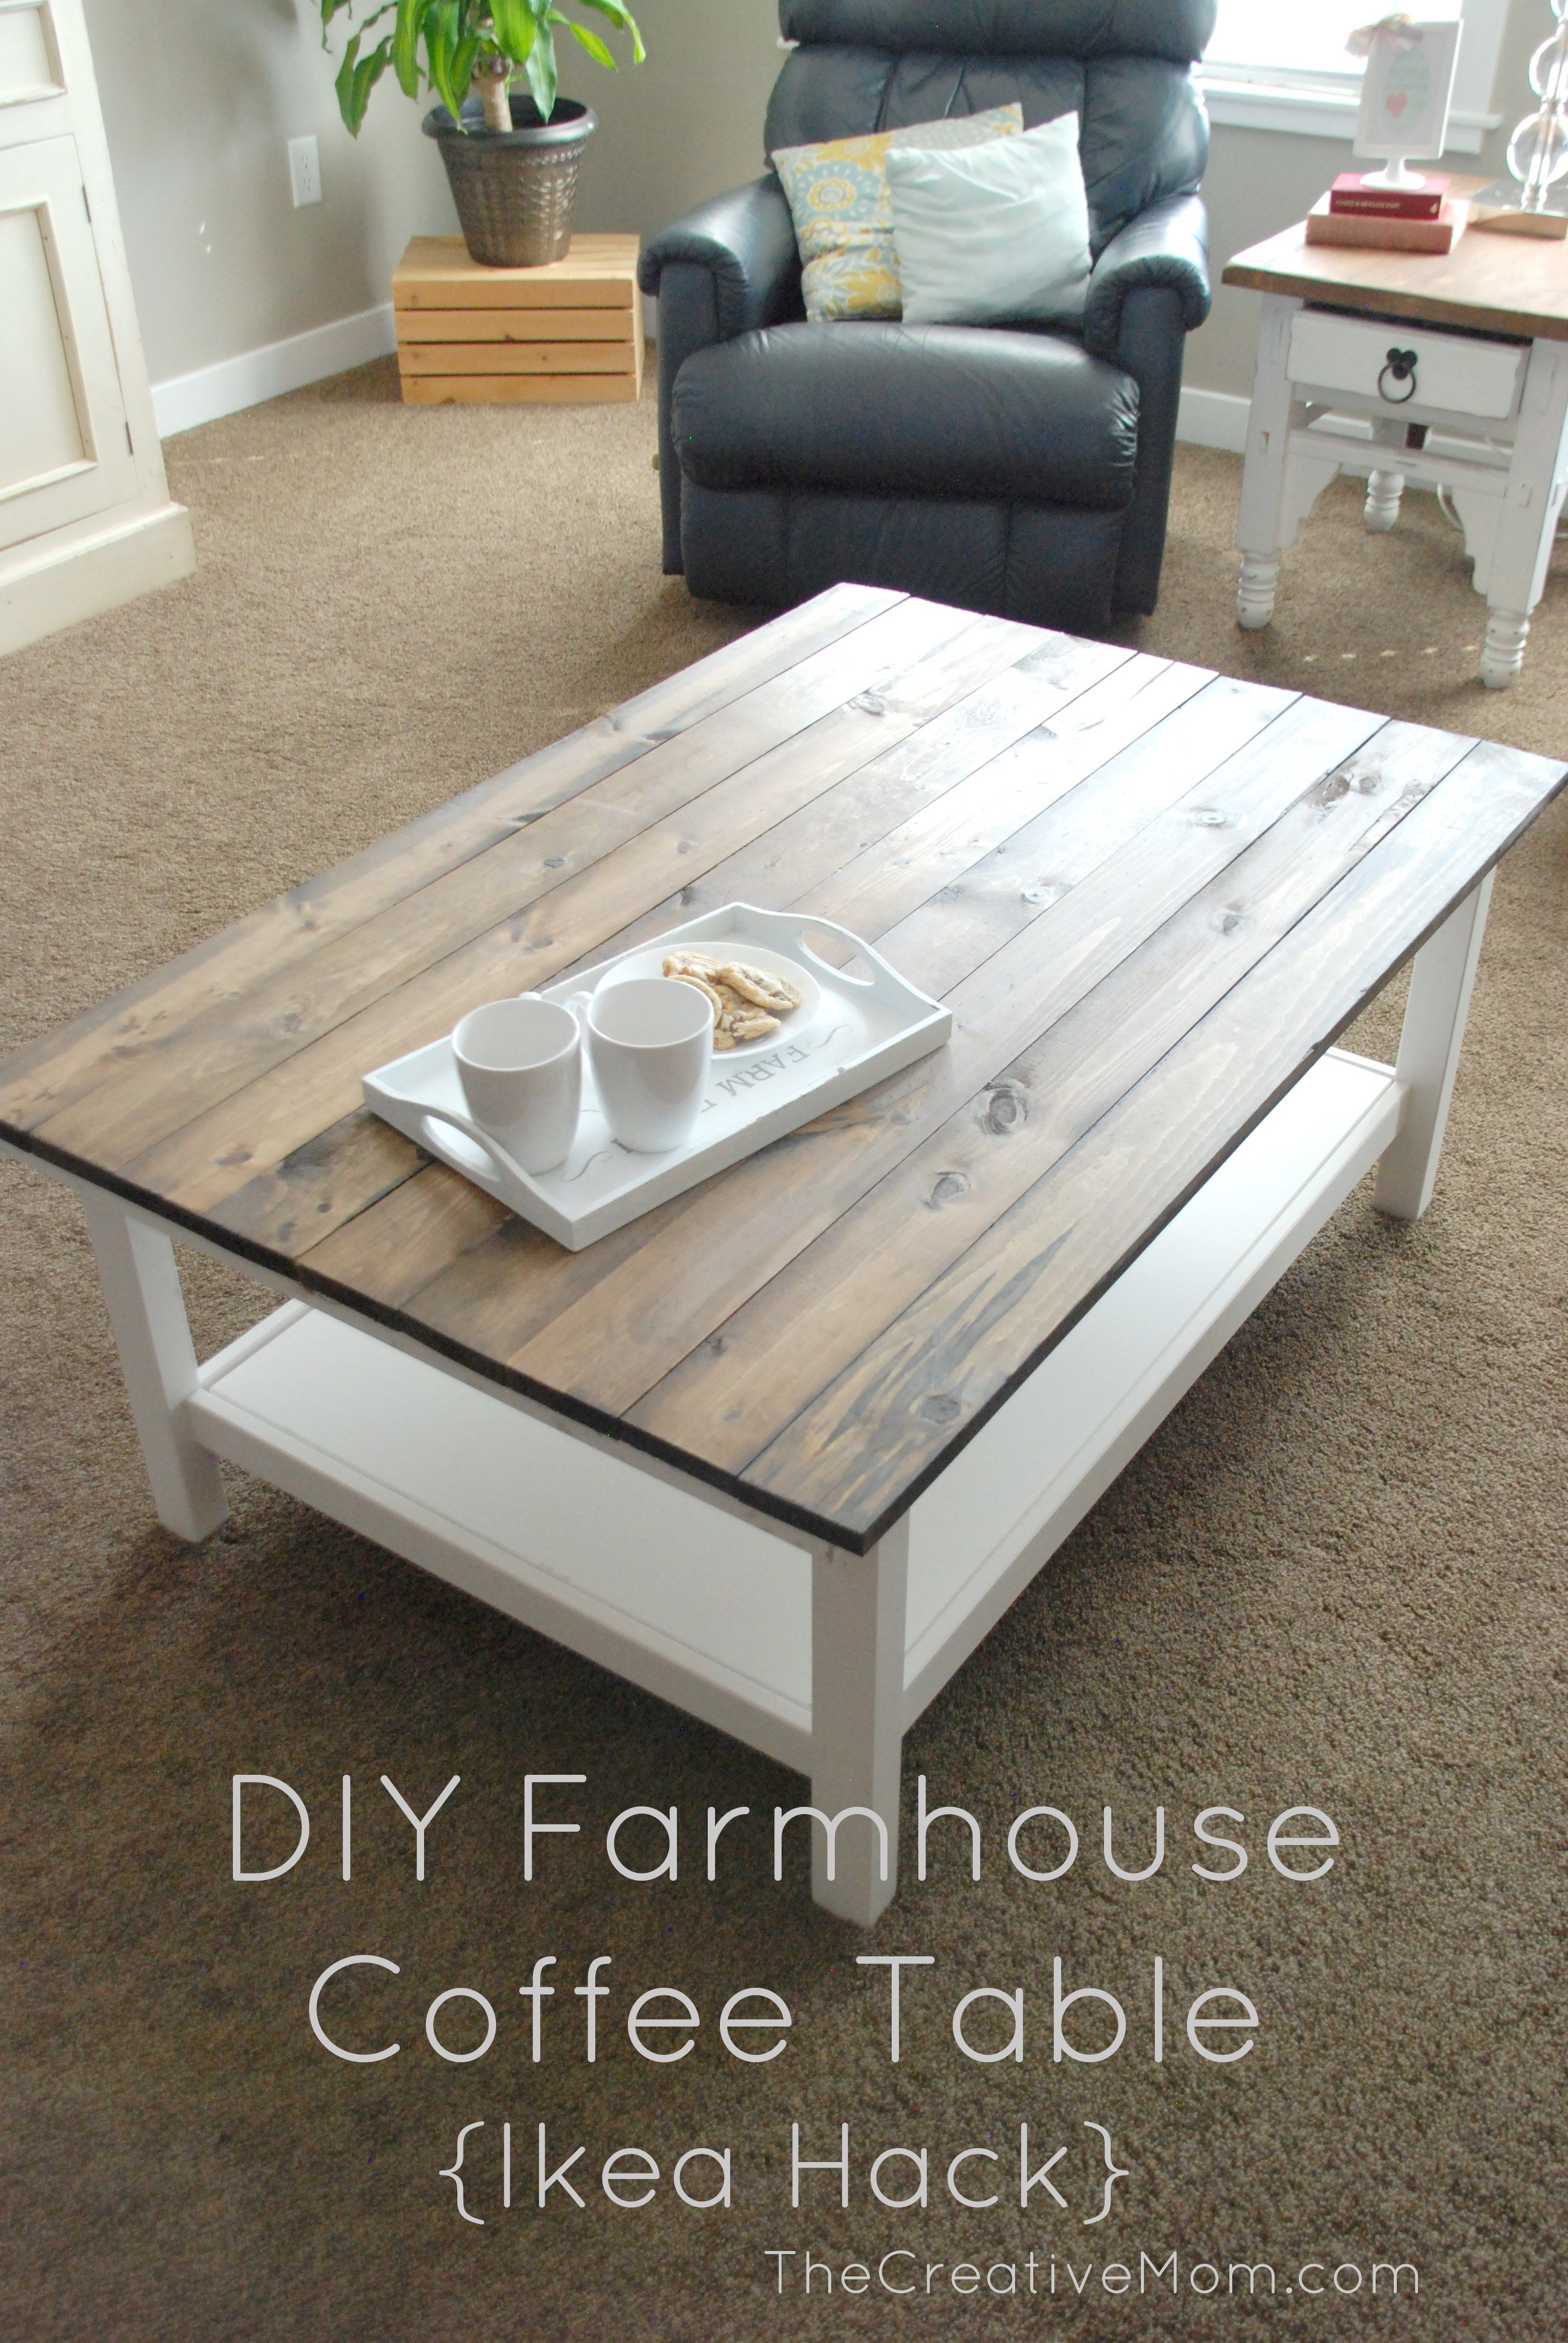 Roller Couchtisch Champ Ii Ikea Hack Diy Farmhouse Coffee Table Home Is Wherever I M With